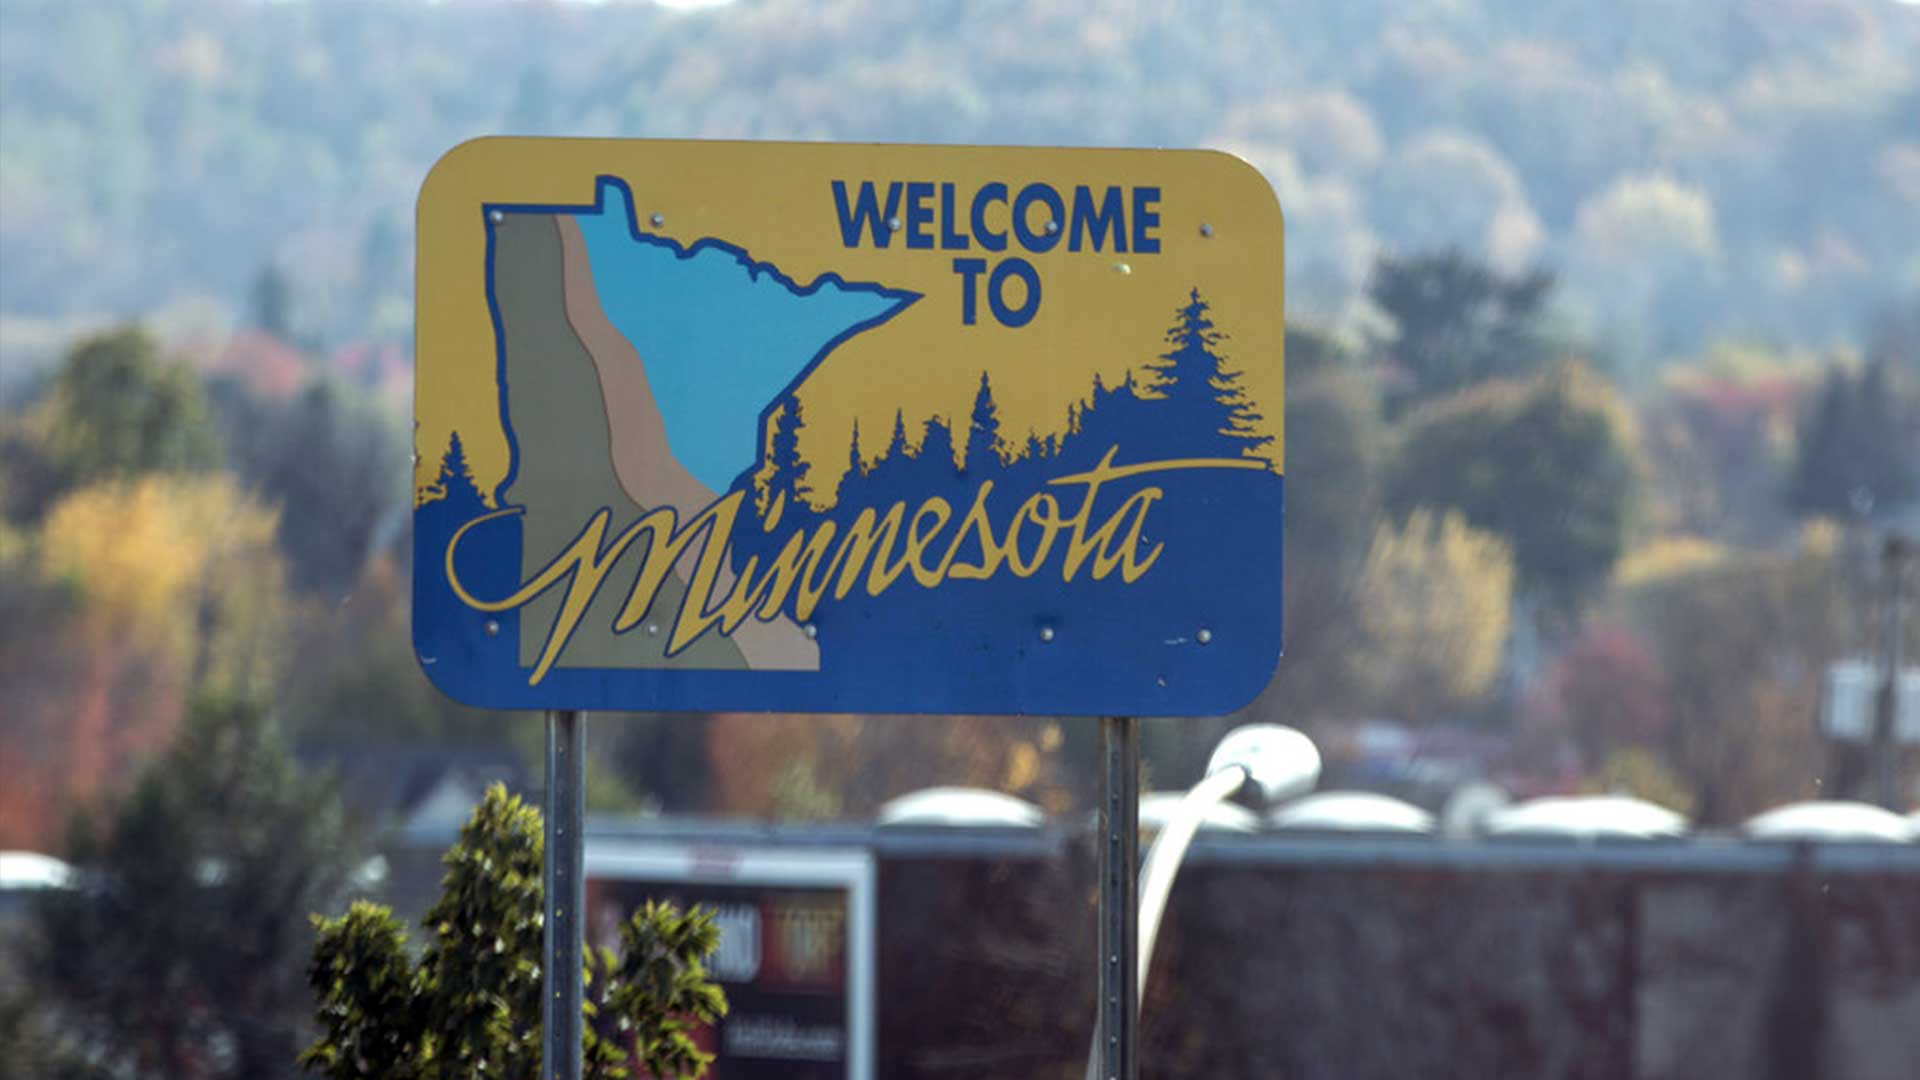 Minnesota-Continues-To-Rank-Among-Best-Places-To-Live-If-You-Ignore-Asterisks.jpg